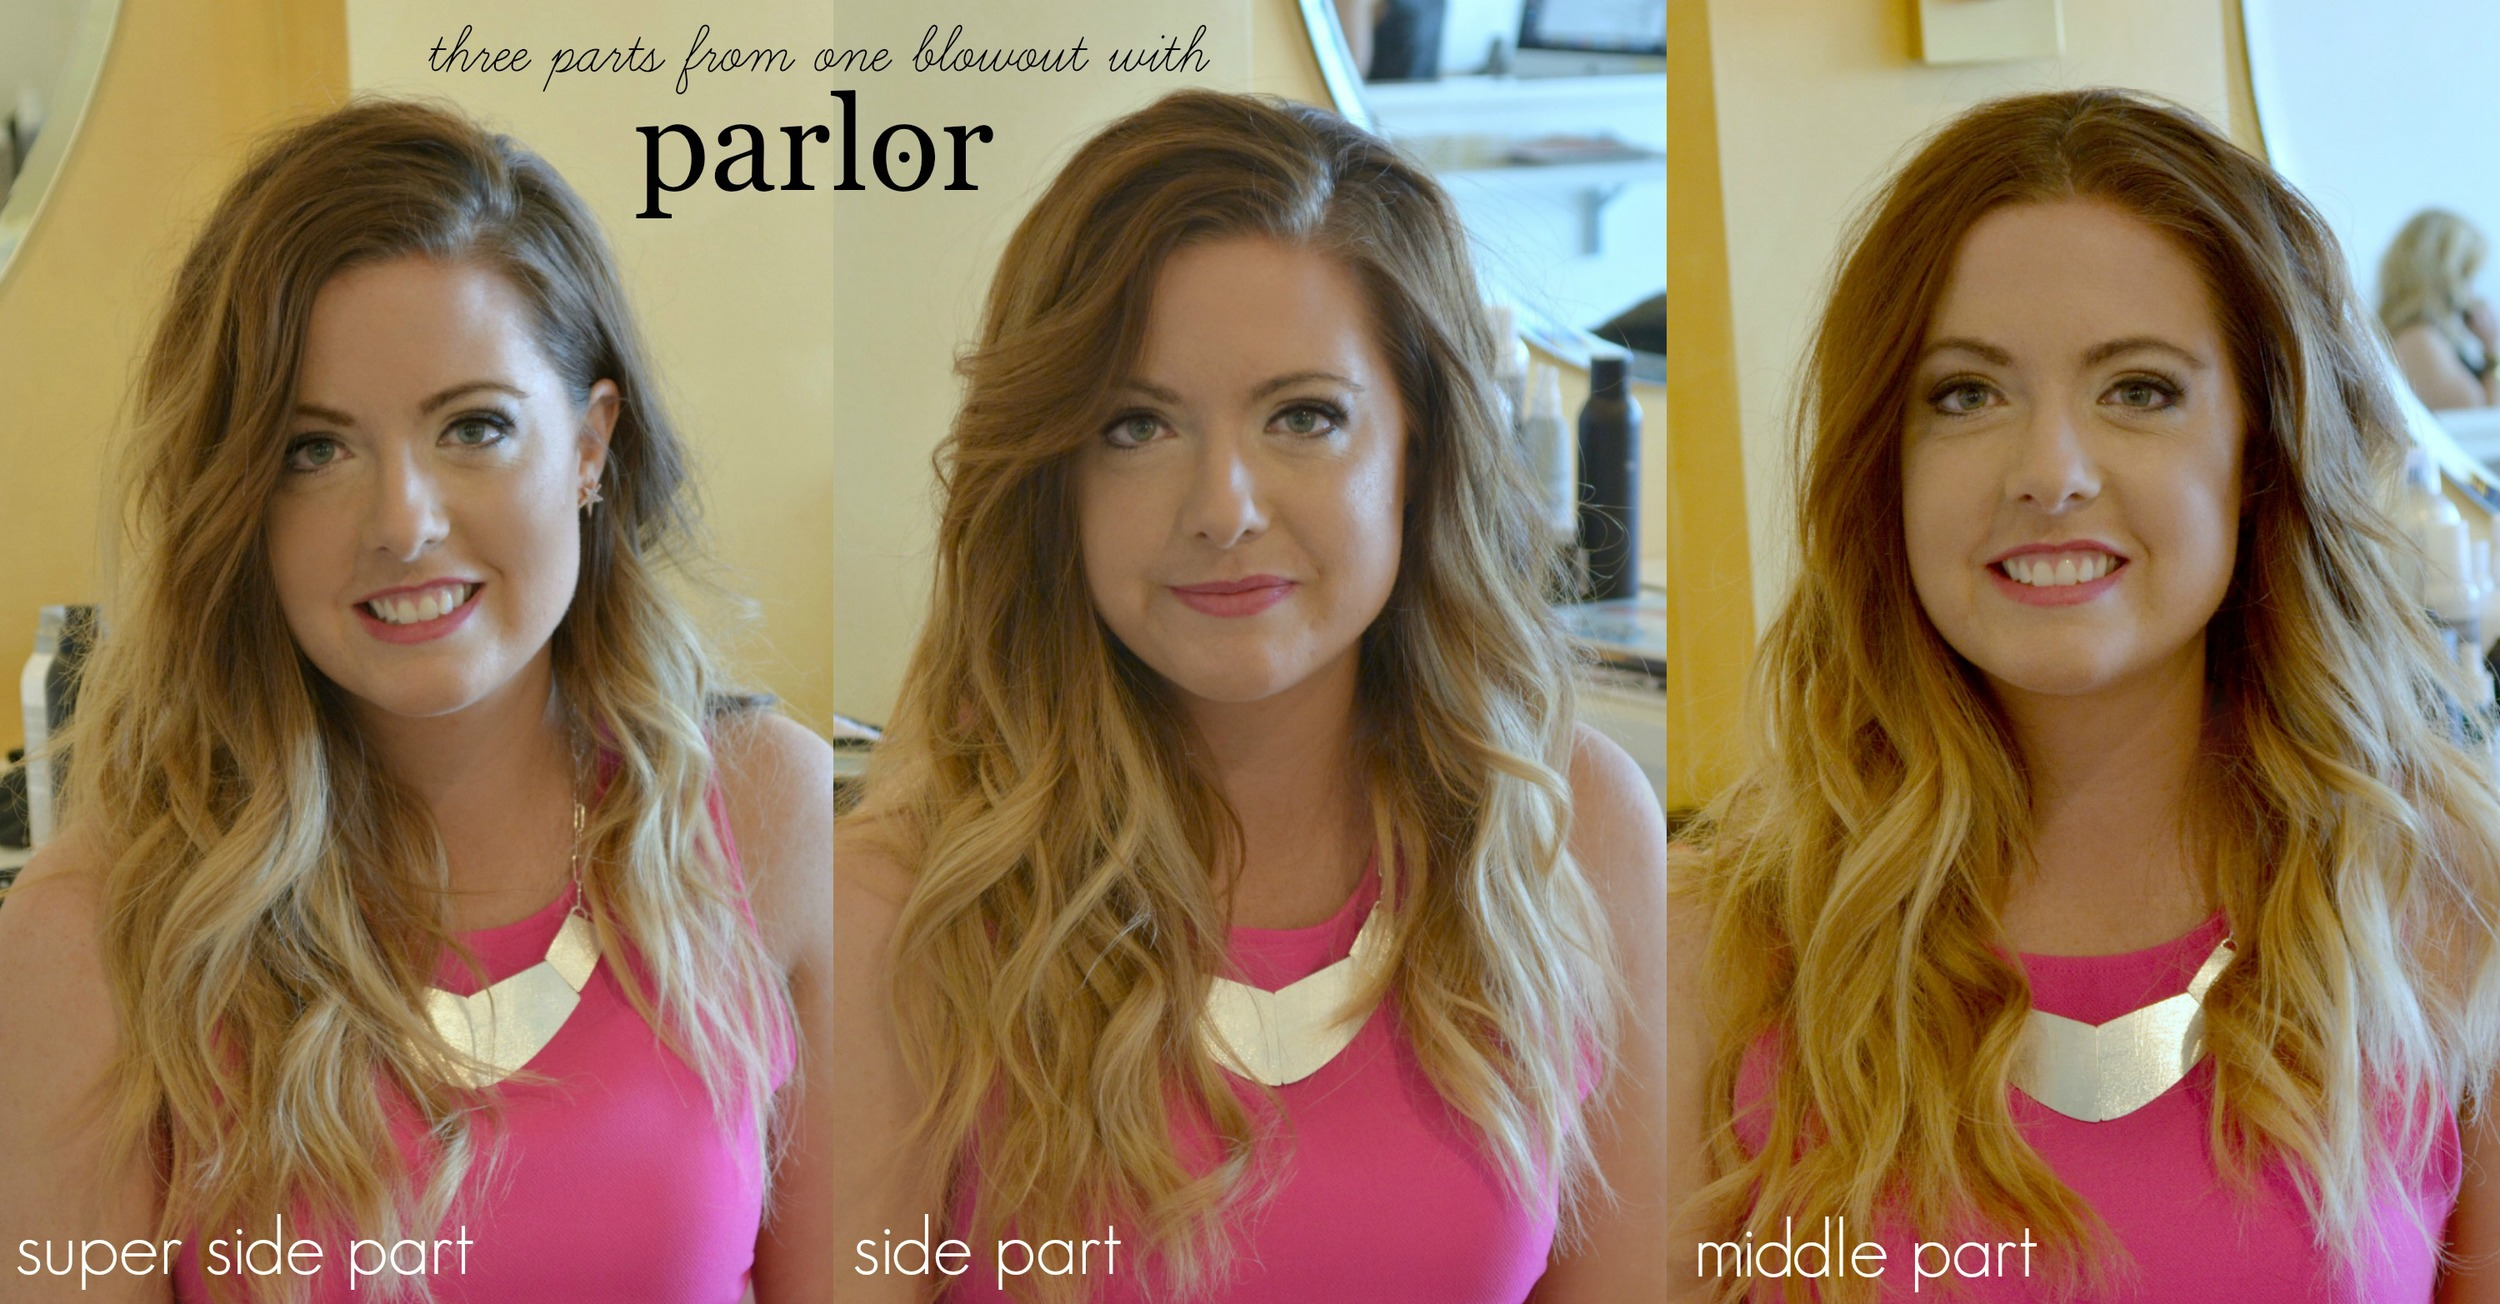 Okay you guys, I was completely impressed by the wonderful gals at    Parlor in Town Center Plaza   !  As you already know, but for reals. I was totally freaking out about the three styles they gave me - with only one blow out. If you've been here before you probably know that I usually wear my hair like the middle picture, just a easy side part and soft curl. So you can probably understand why I was so excited when they showed me how to curl my hair a new way (more on that tomorrow) and then how to style it two new ways!. They showed me how to do the super side part and I literally died of happiness! The inspiration was    Sienna Miller    from the Golden Globes and I feel like I want to wear my hair like this ALL of the time. So fun! And the middle part - I usual am pretty suspect of doing my hair like this, but I totally loved it! The curls fell in just the right places! So you need to make an appointment with them for your Valentine's day extravaganza!